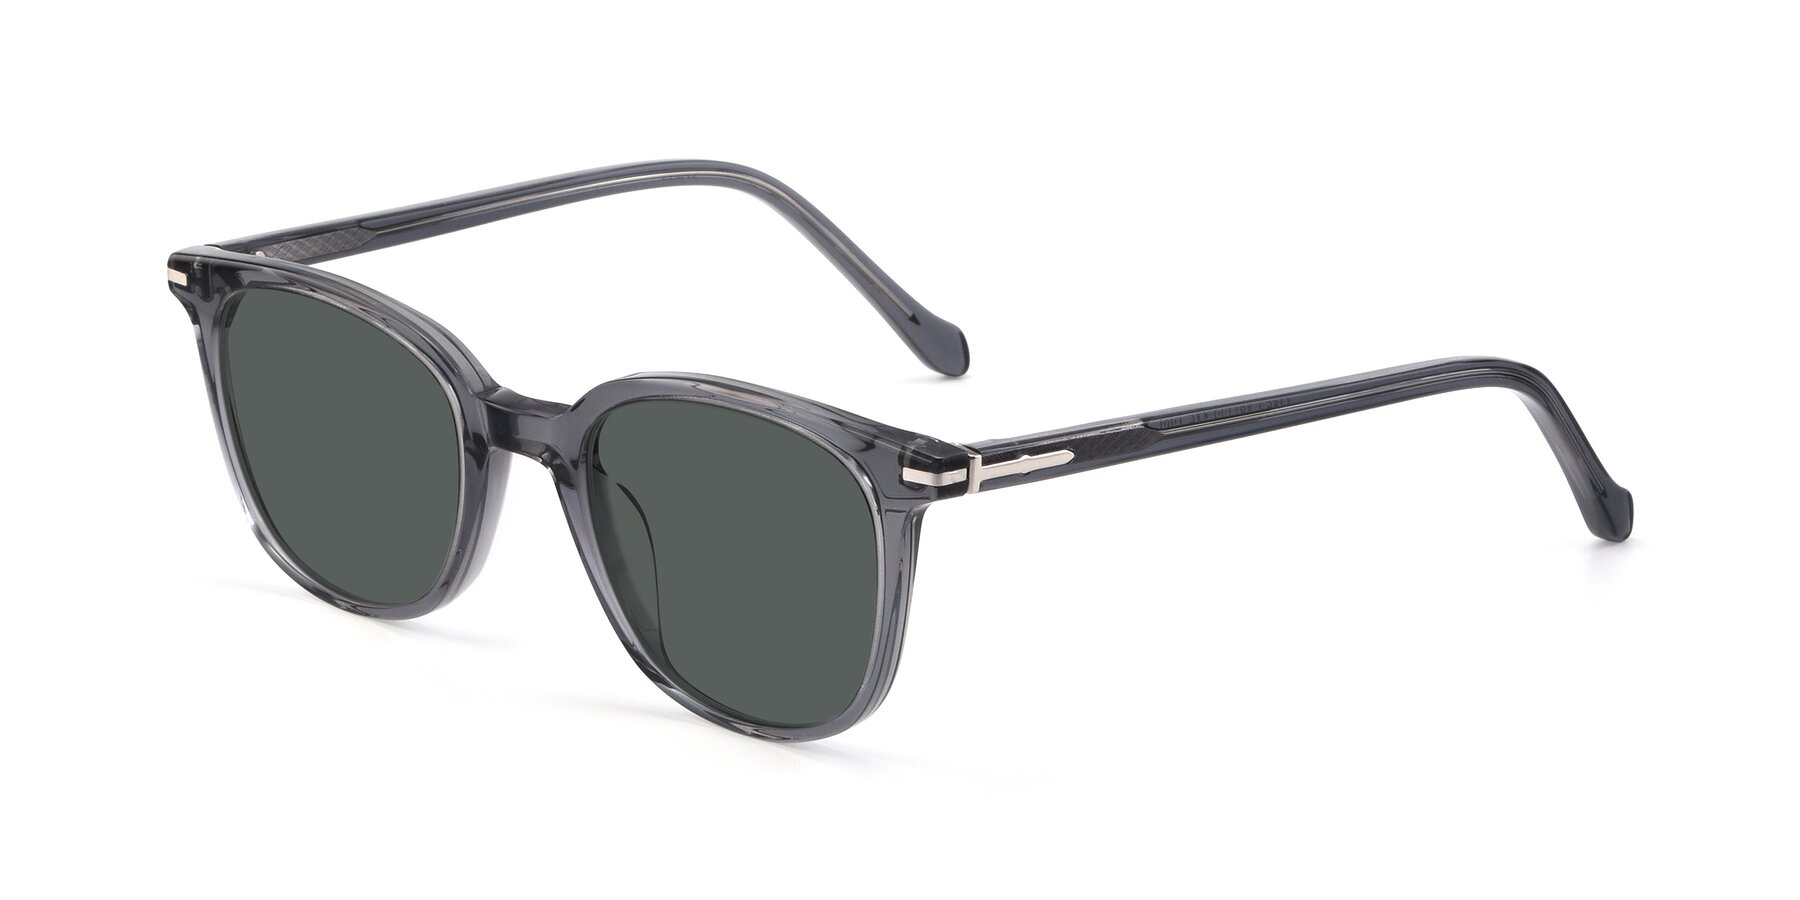 Angle of 17562 in Transparent Grey with Gray Polarized Lenses